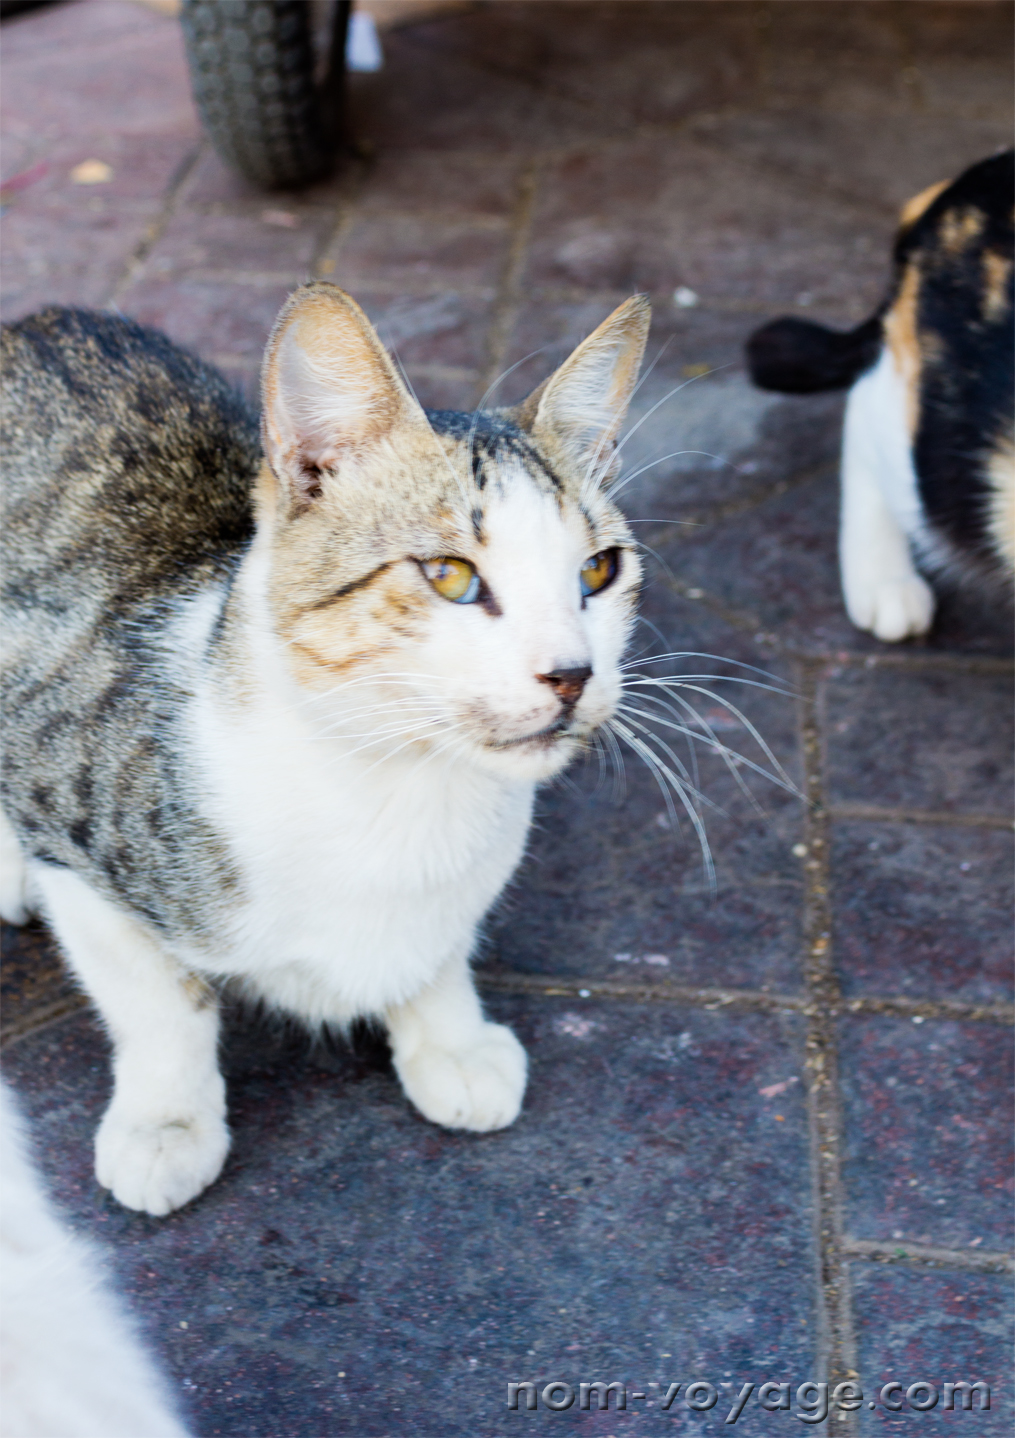 Another little cat in Jemaa El Fna who loved the cat treats we brought.